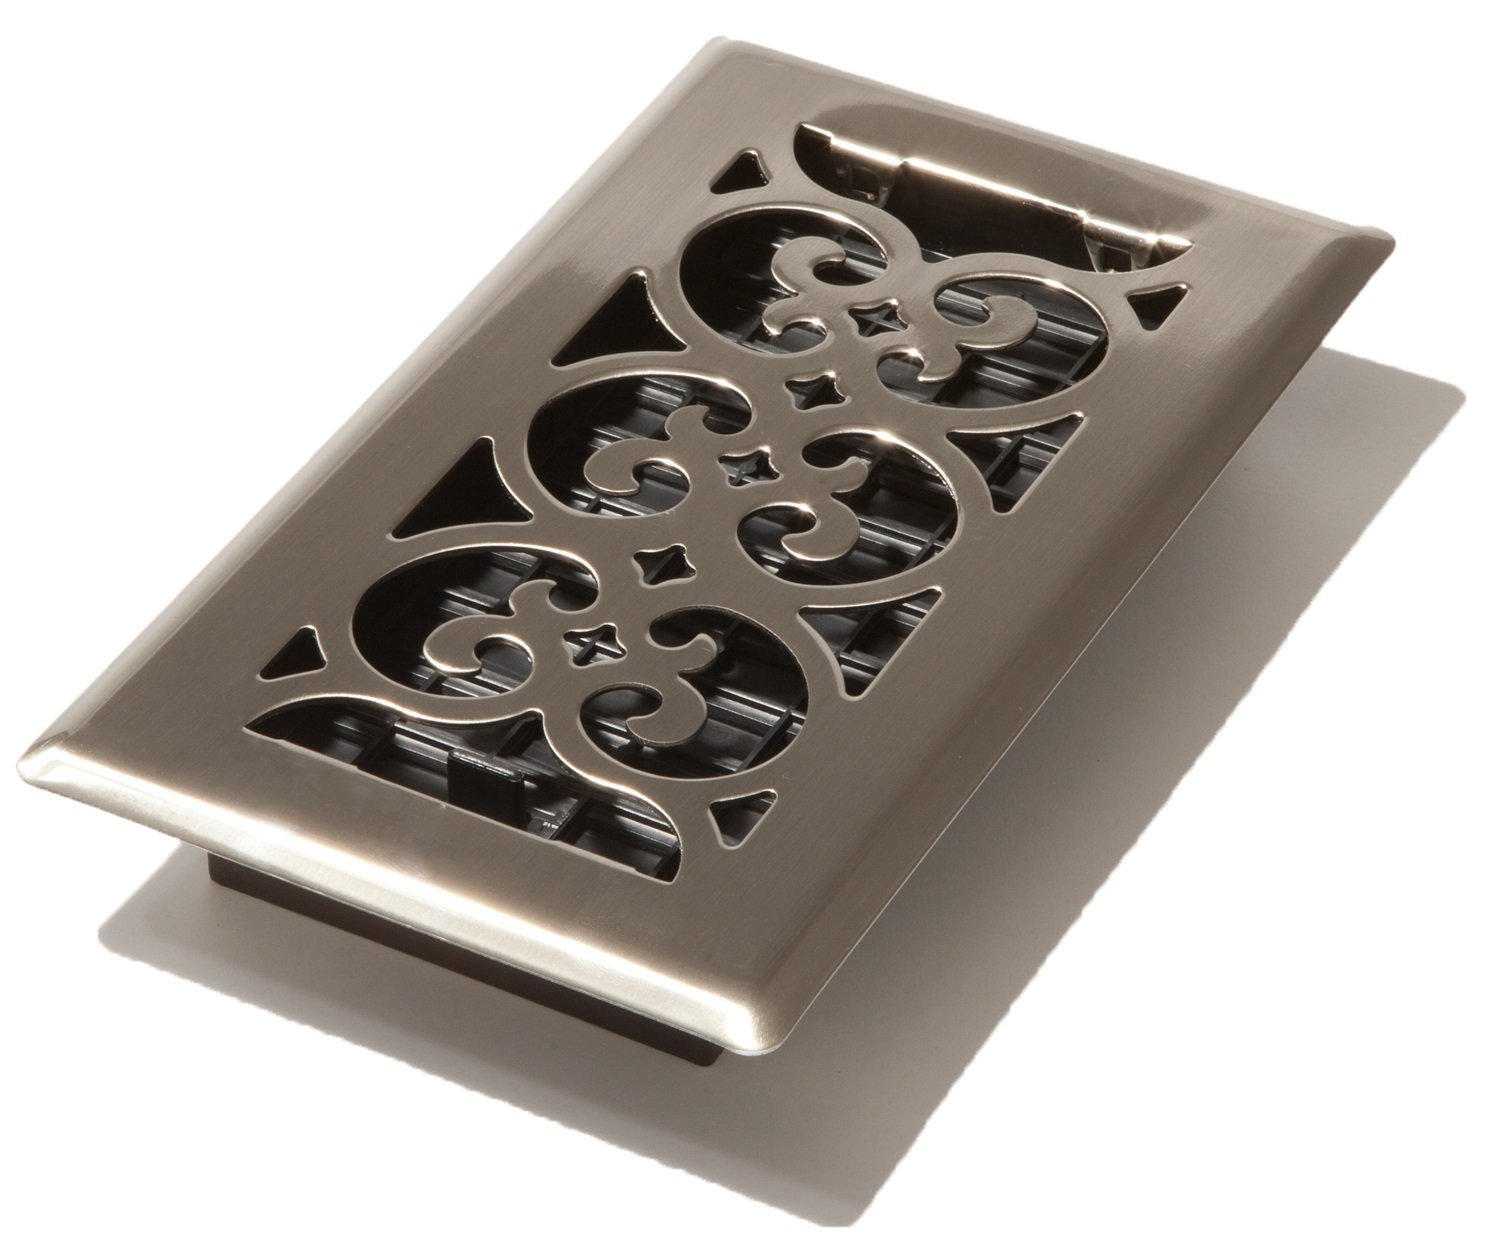 Brushed Nickel 4 X 8 Plated Steel